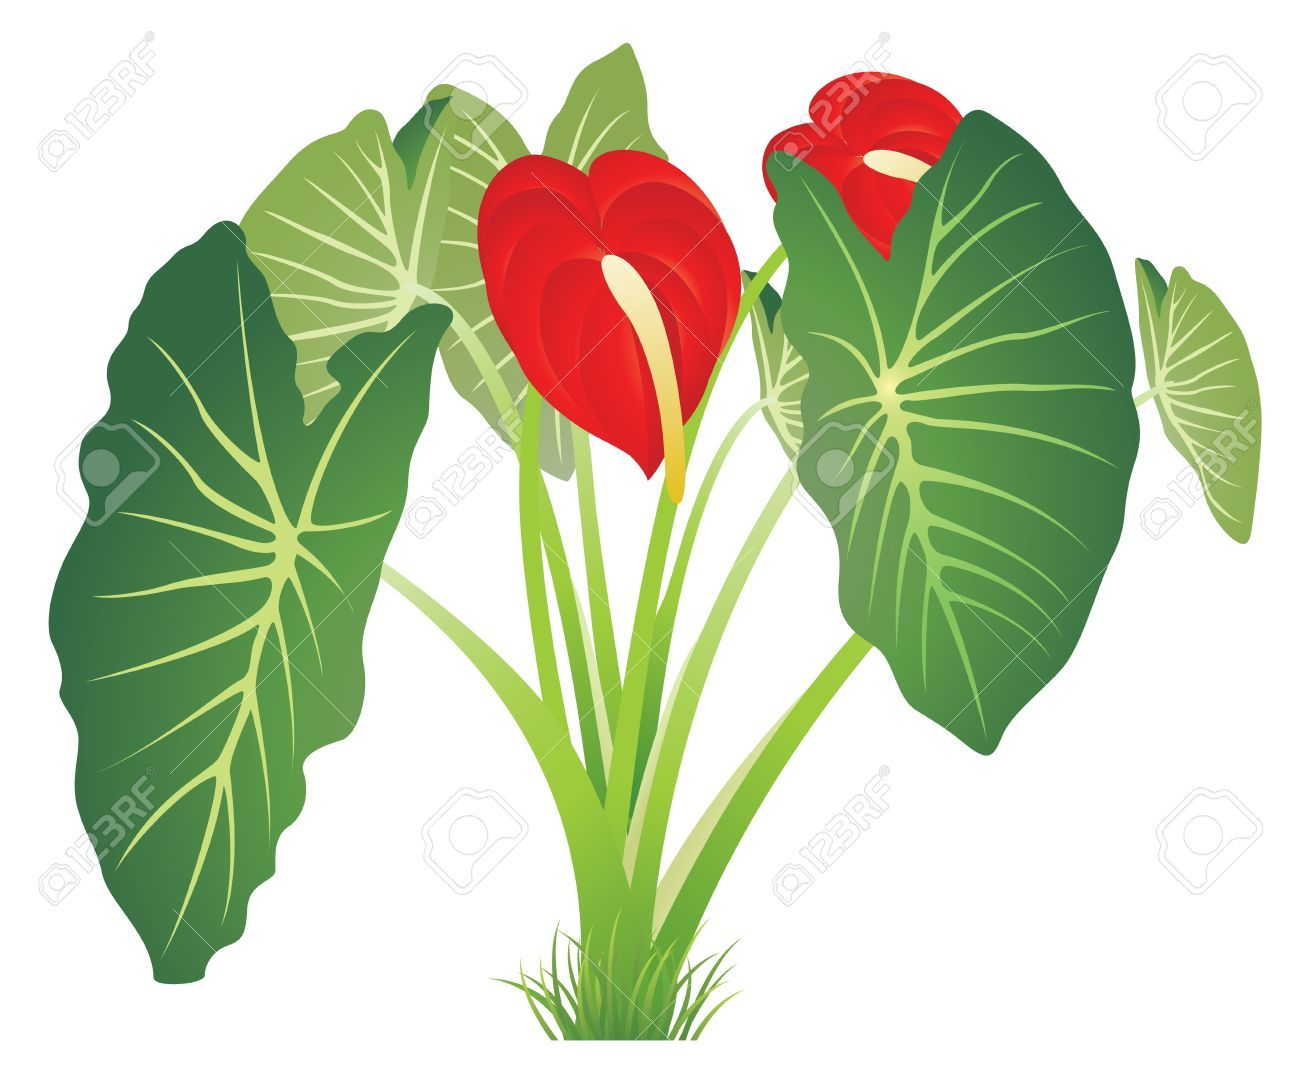 Image result for clipart images of jungle plant.